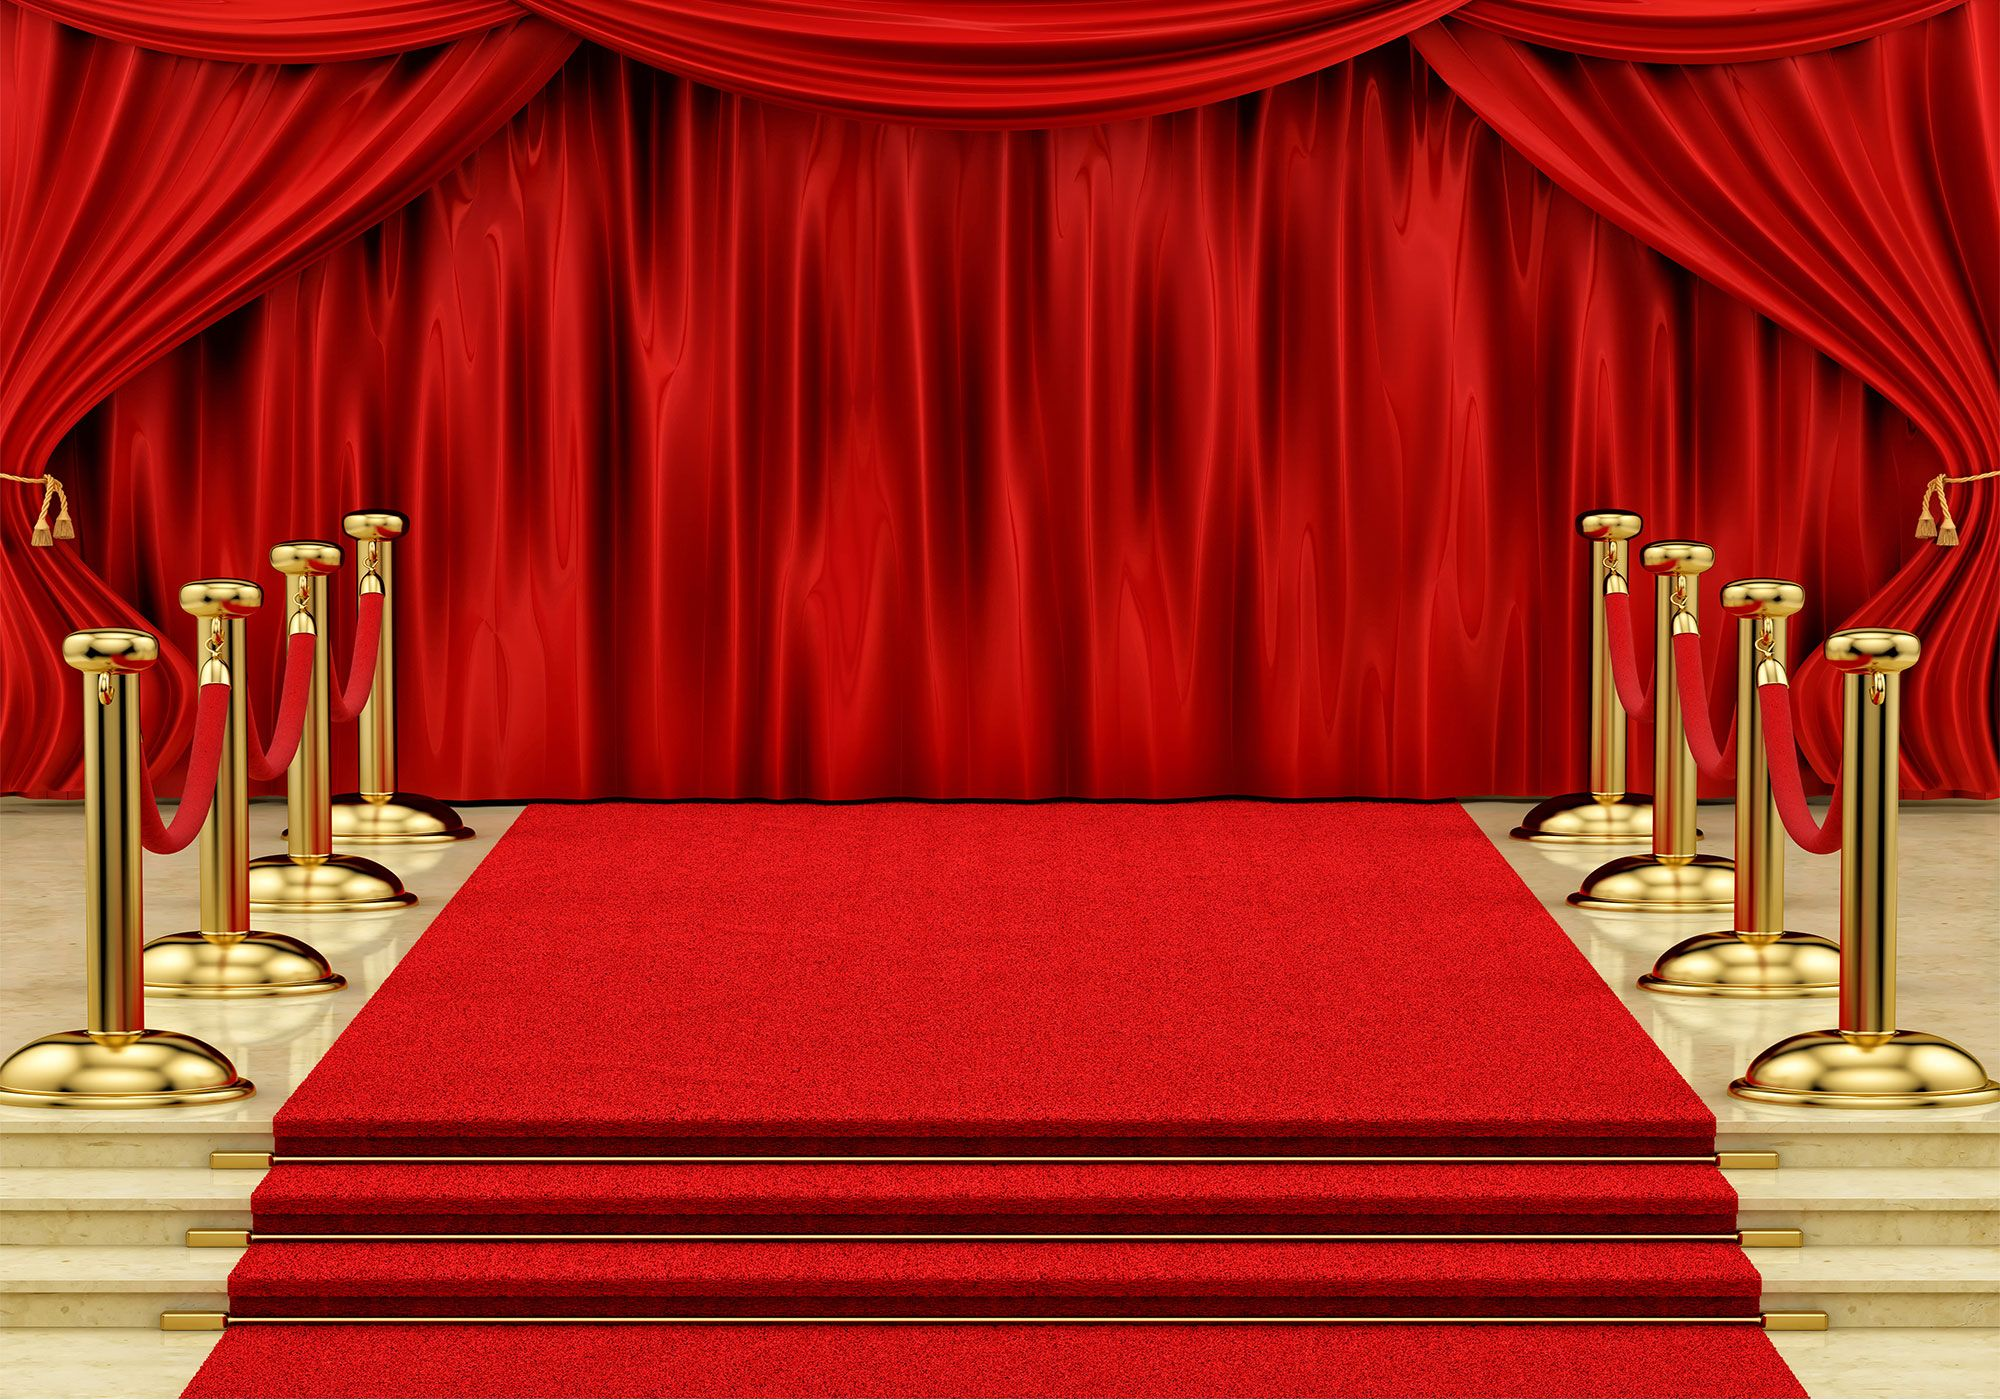 Red Carpet Curtain Backdrop Youtube Background Photo Studio Booth